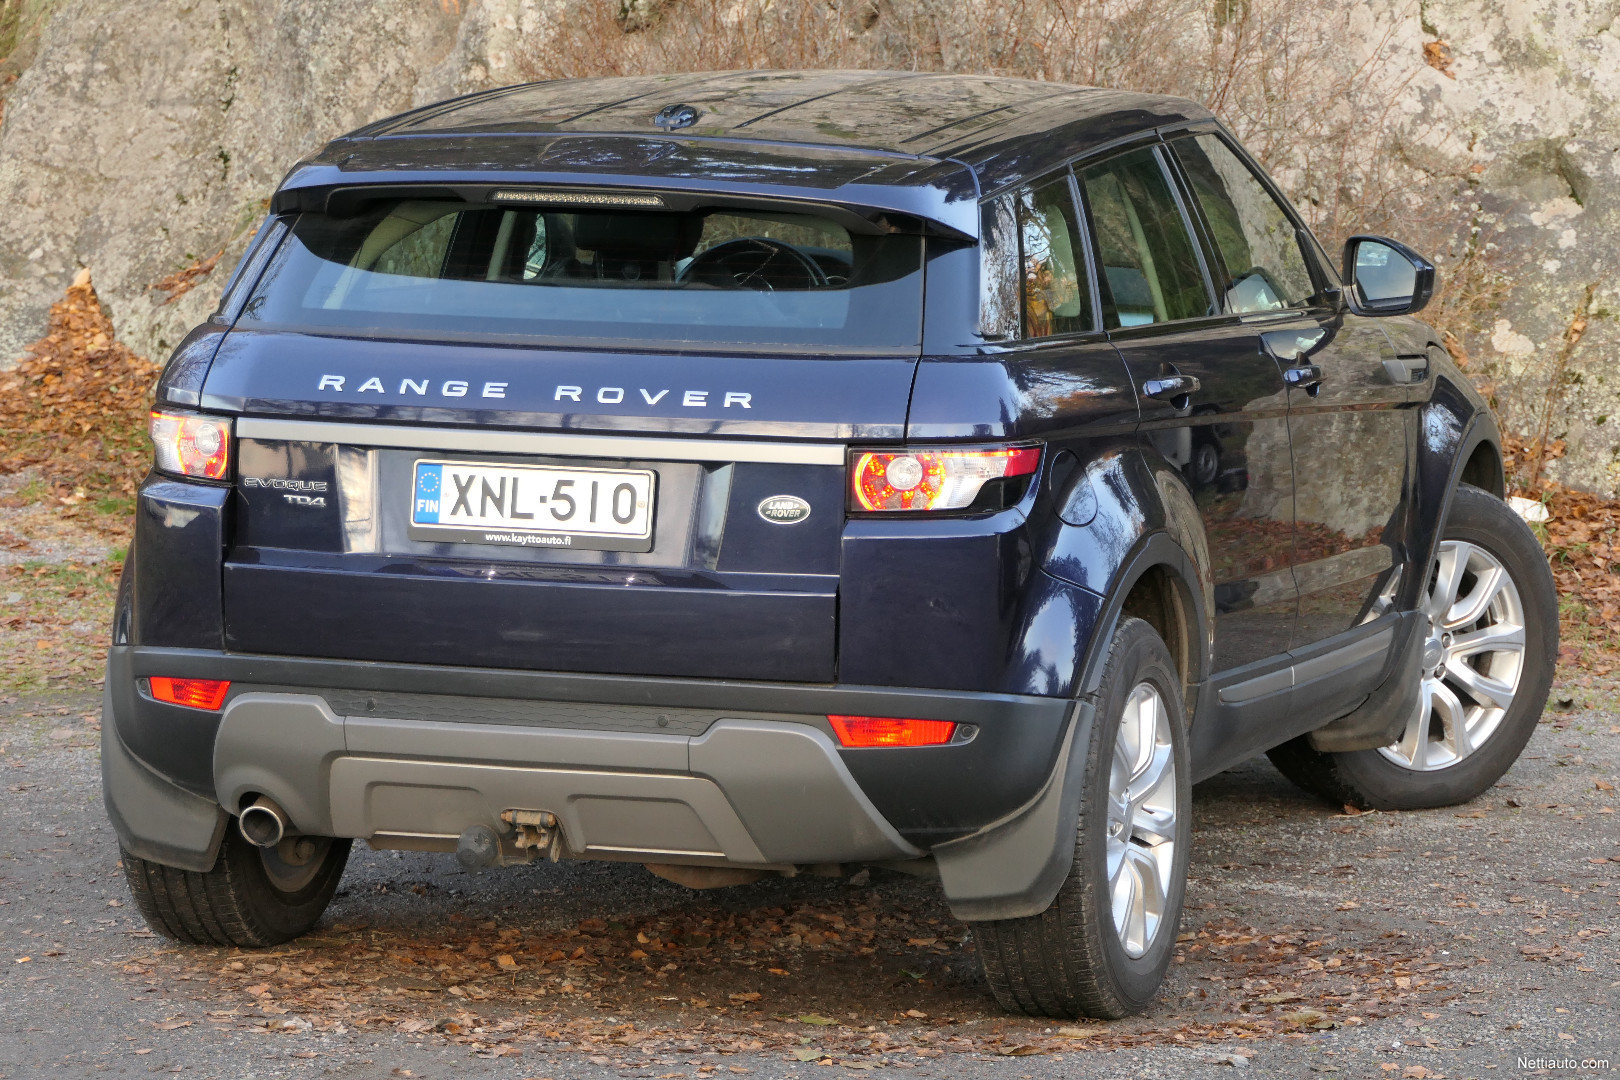 Land-Rover-Range-Rover-Evoque-7768d2b4e37b7022-large Range Rover Evoque Wiring Diagram on price india, special edition, 2 door coupe, convertible for sale, off road, black edition, for sale, firenze red,